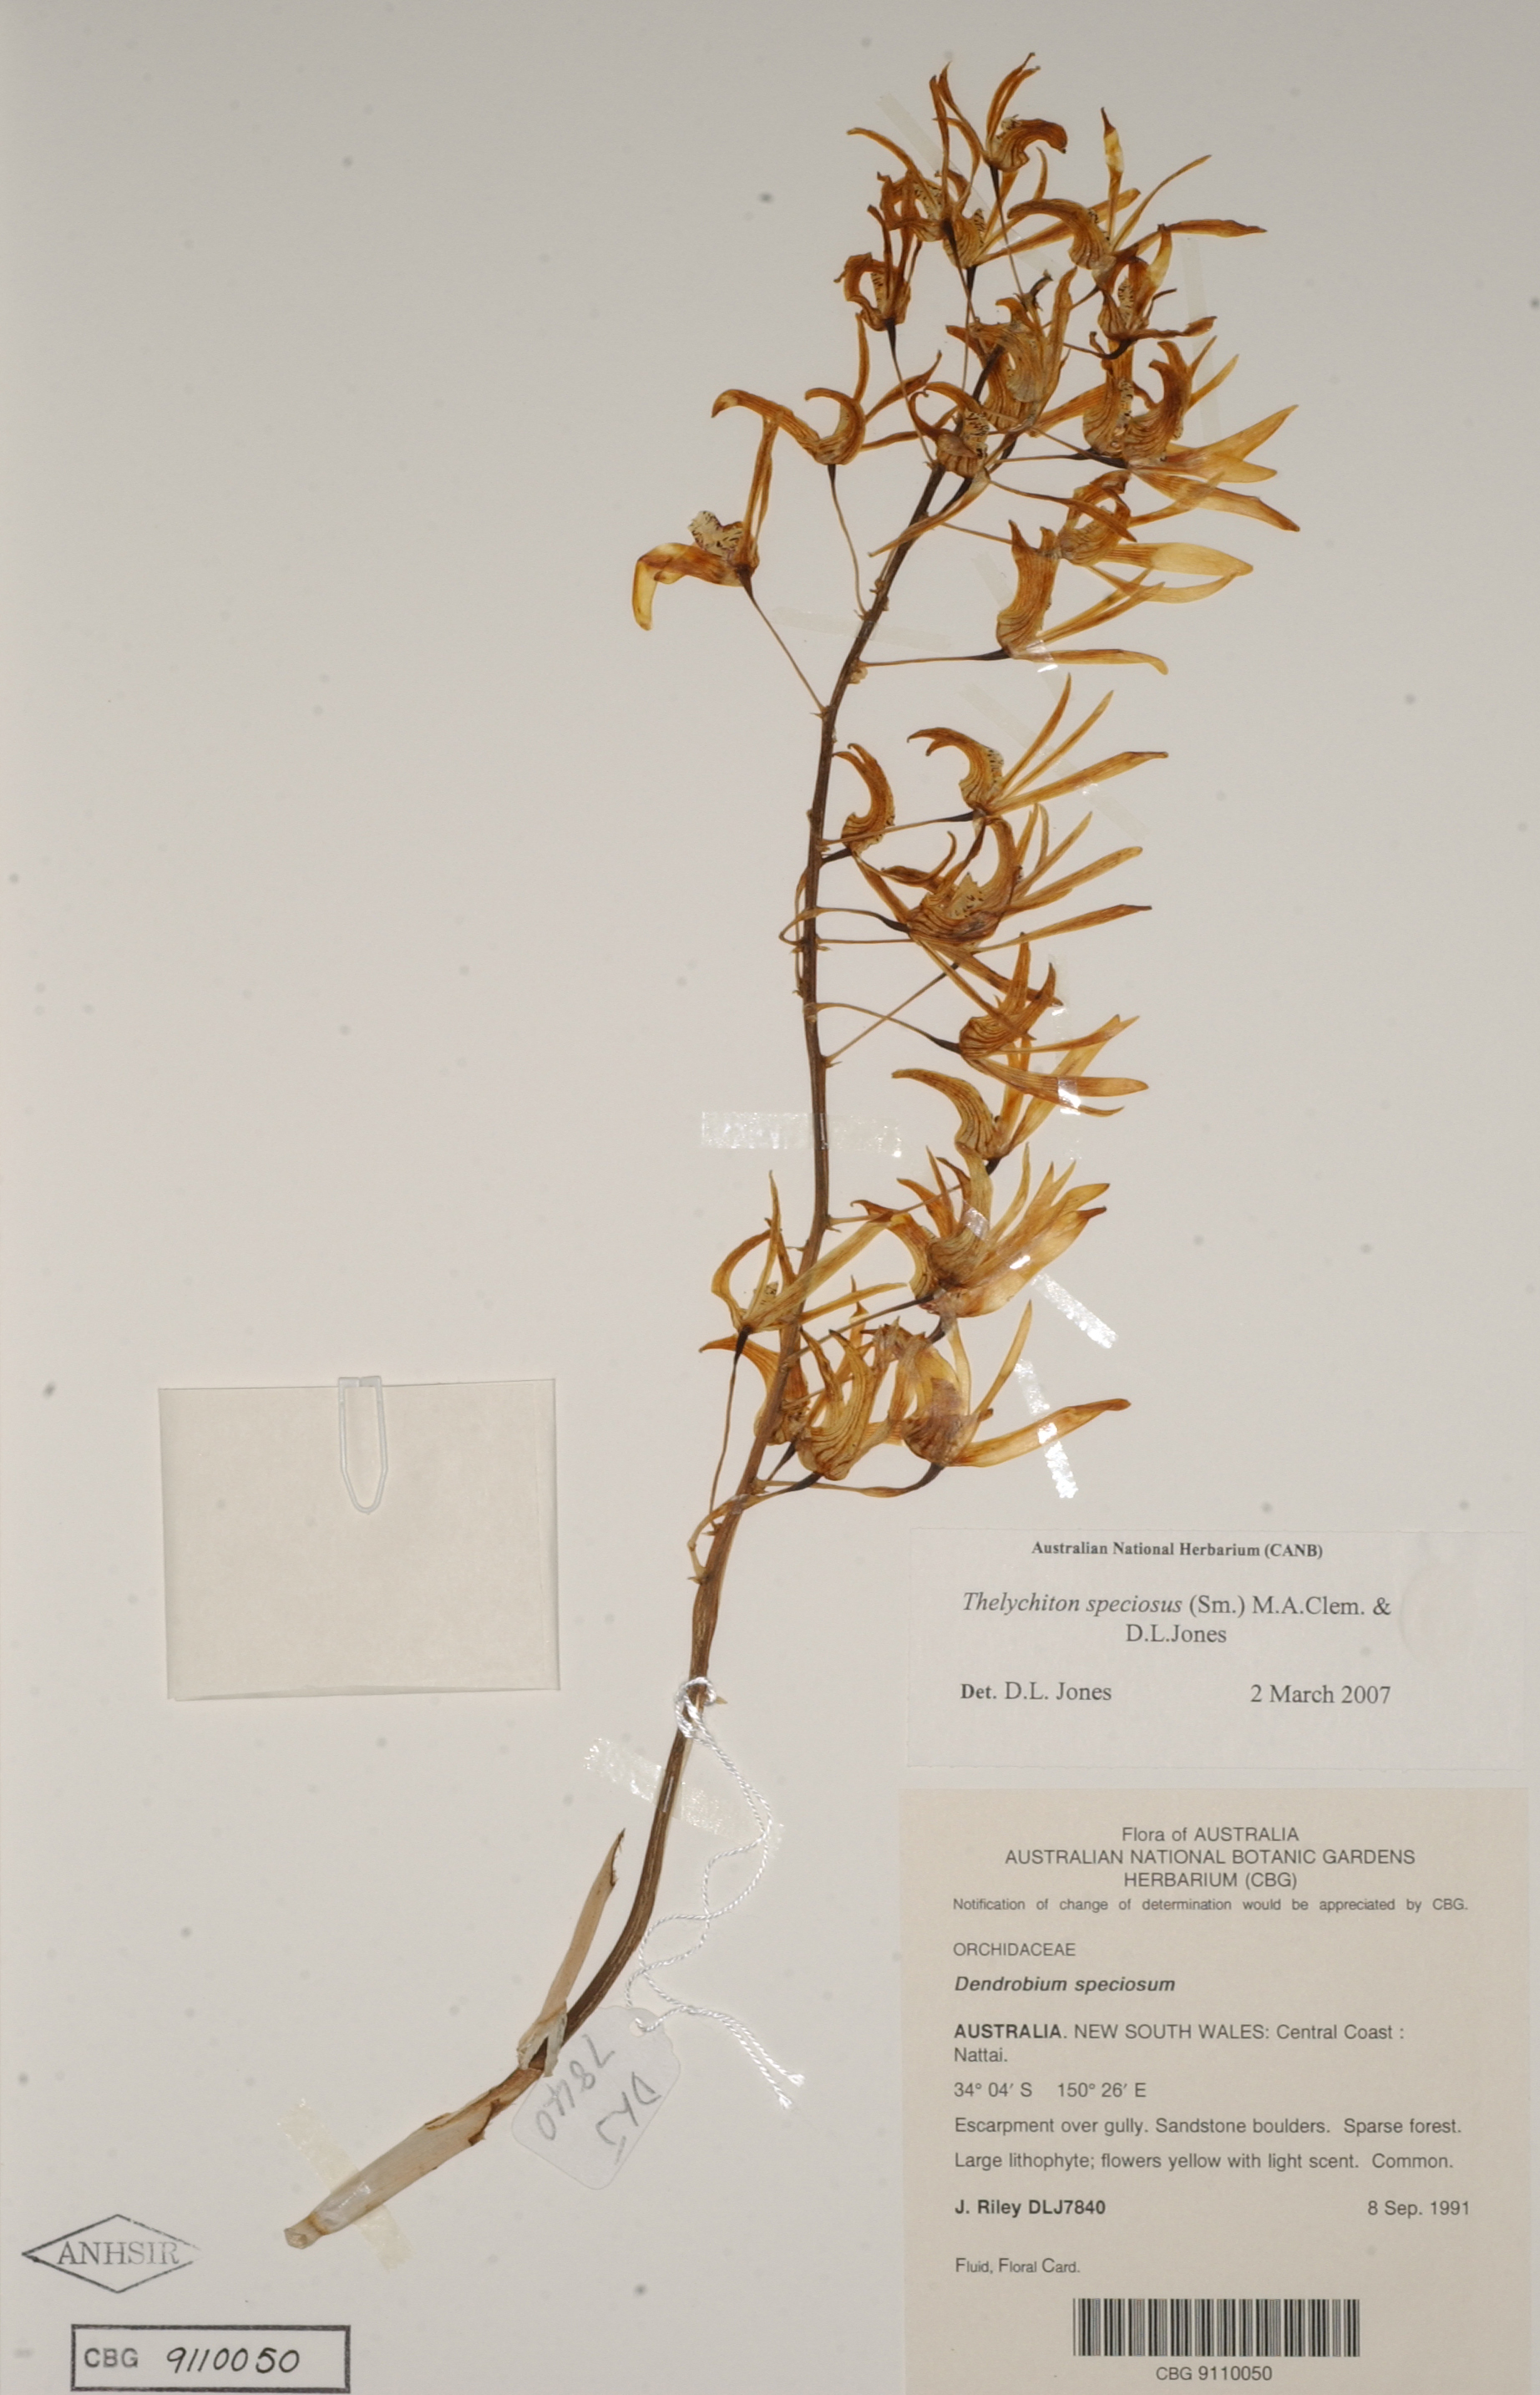 Flattened flowering stem of a rock orchid on a white sheet with typed specimen data label.